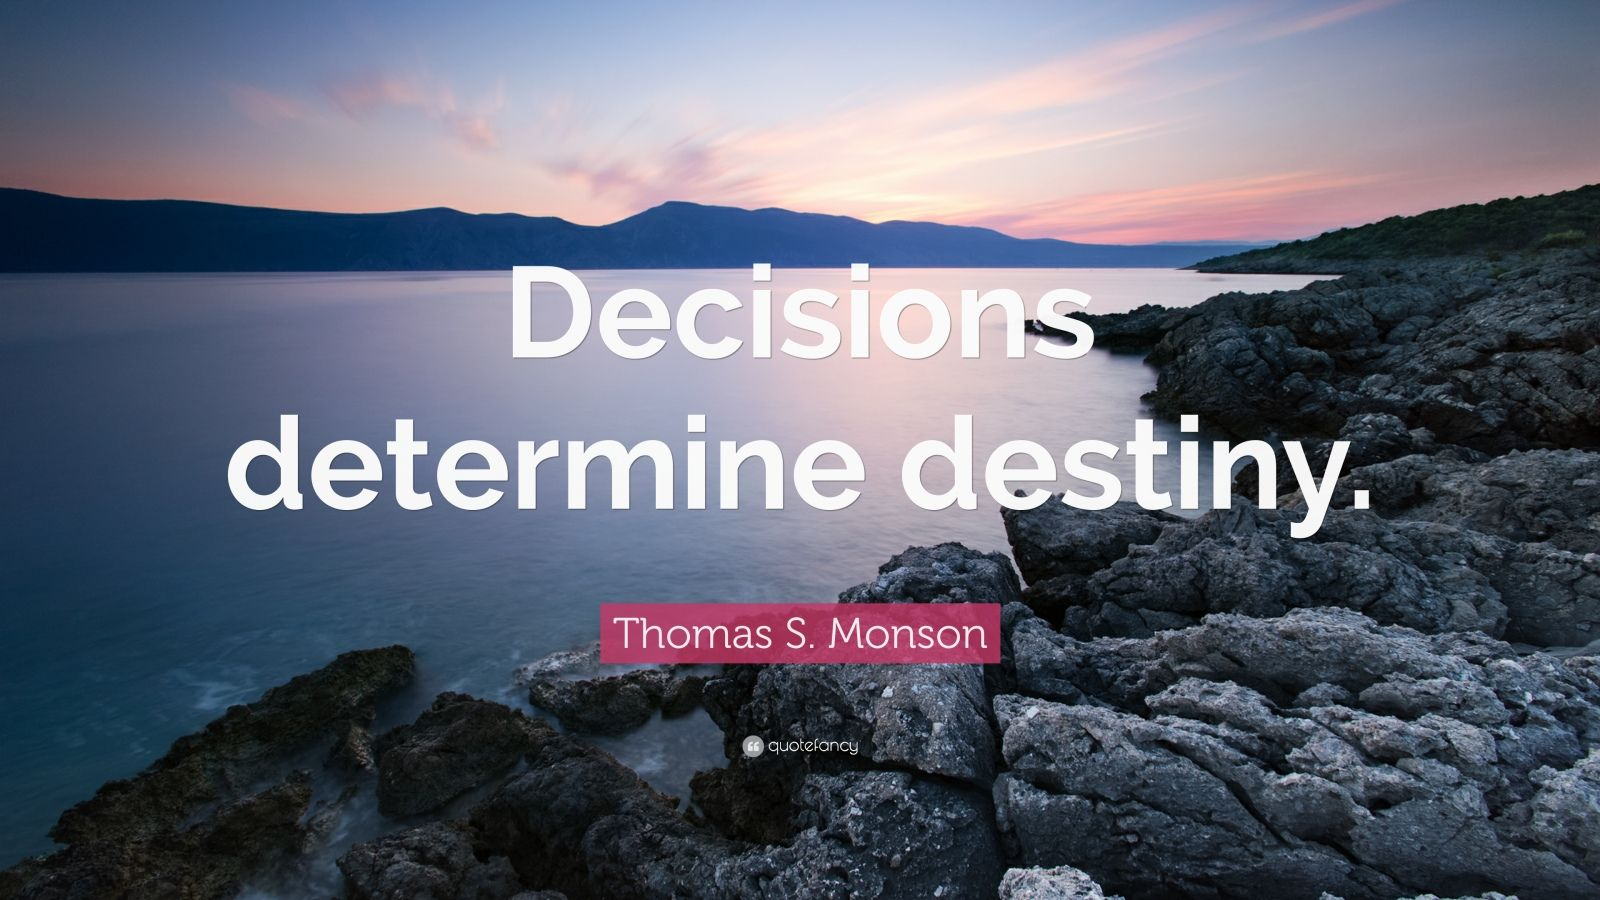 Thomas S Monson Quotes 100 Wallpapers Quotefancy